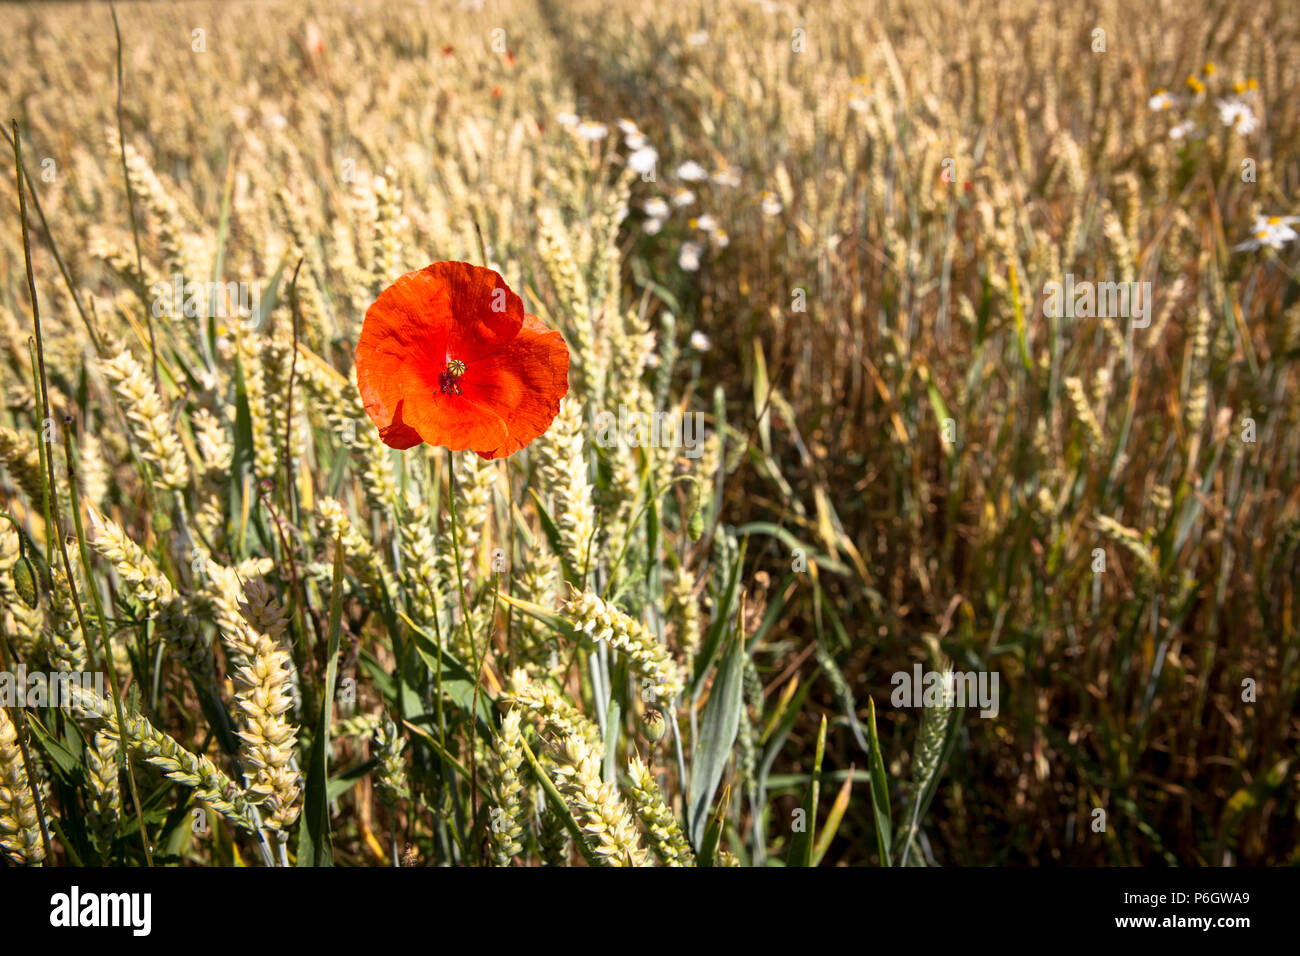 Germany, poppy flower in a cornfield, wheat.  Deutschland, Mohnbluete in einem Weizenfeld. Stock Photo